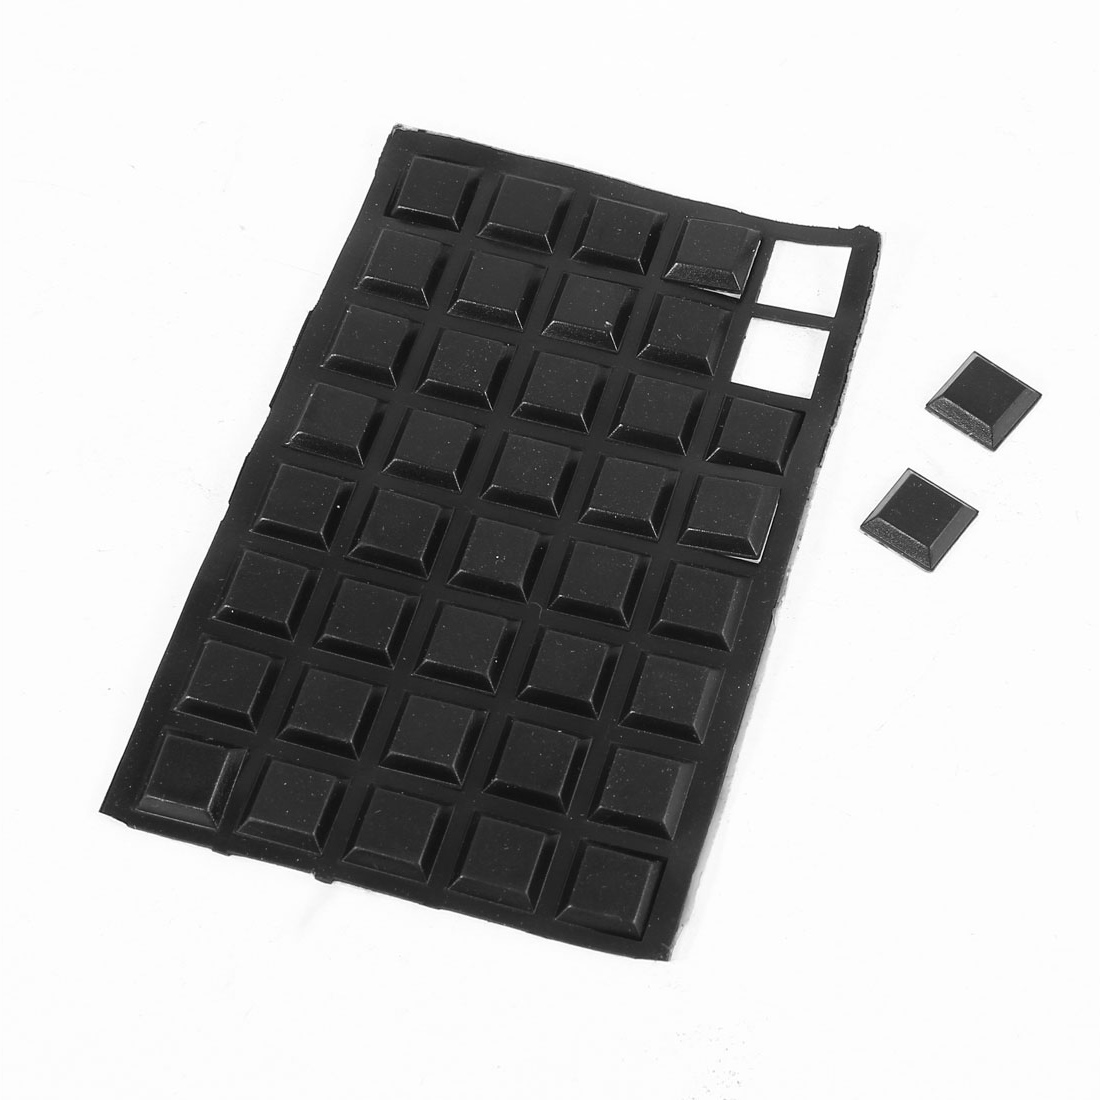 40 Pcs Rubber Self Adhesive Furniture Table Chair Foot Protector Pads 12x12x3mm